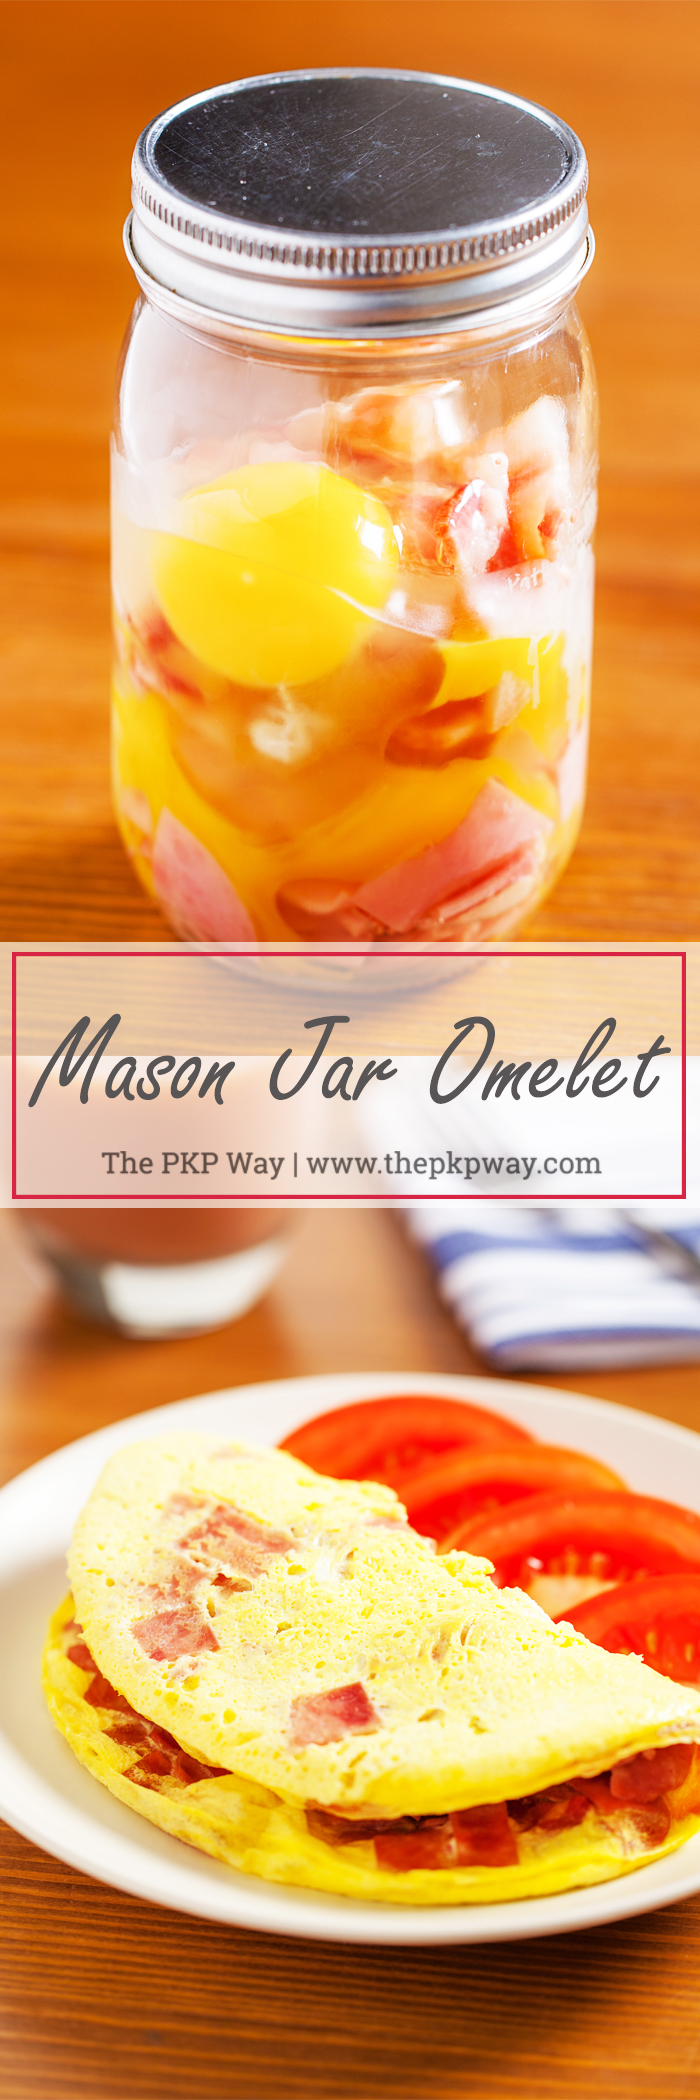 For a warm breakfast any day of the week, customize your own quick and easy Mason Jar Omelet.